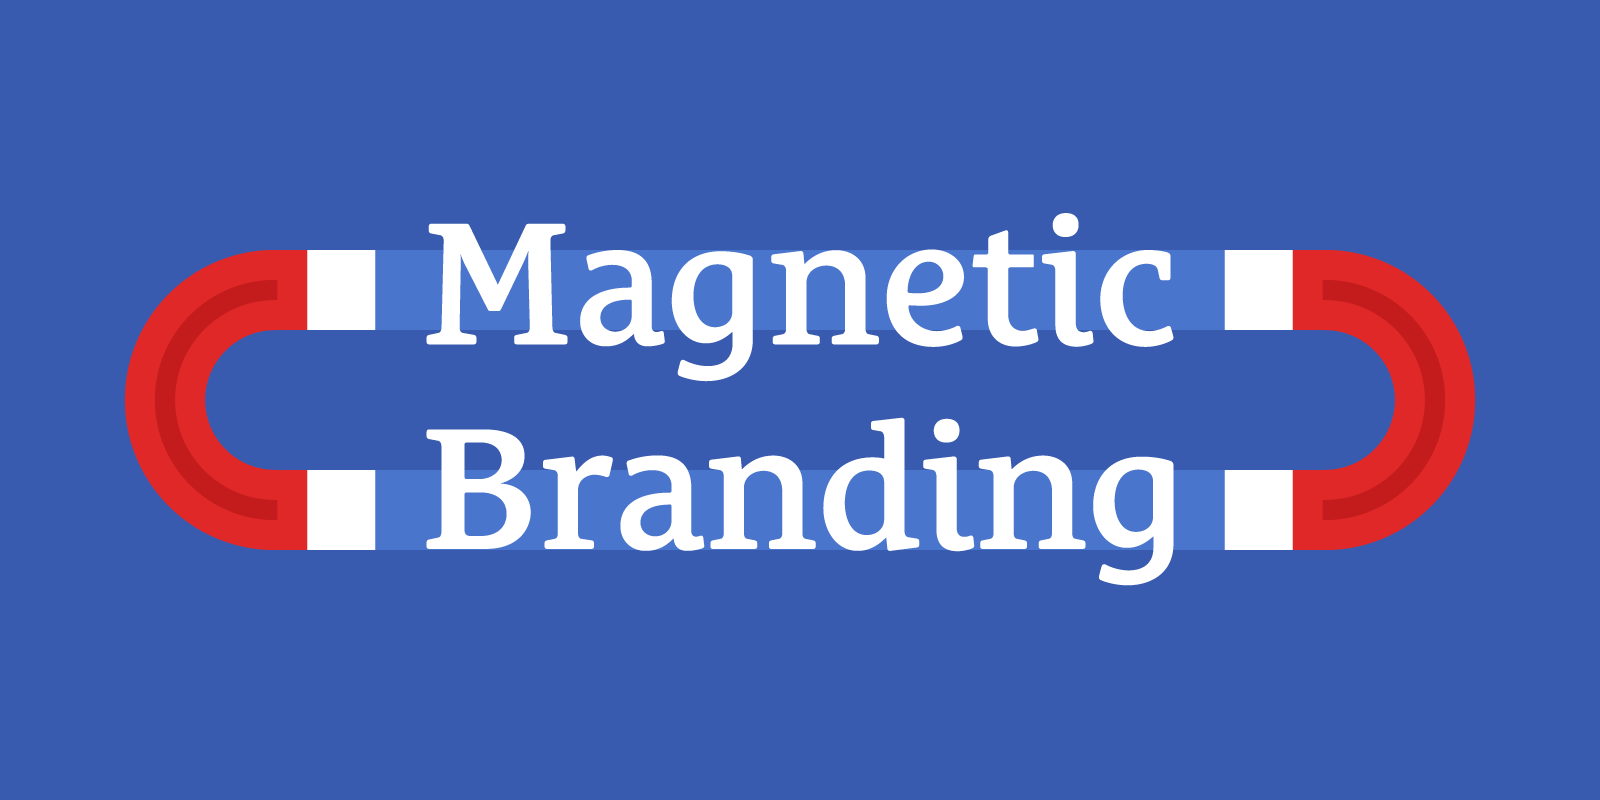 034: Building a Magnetic Brand